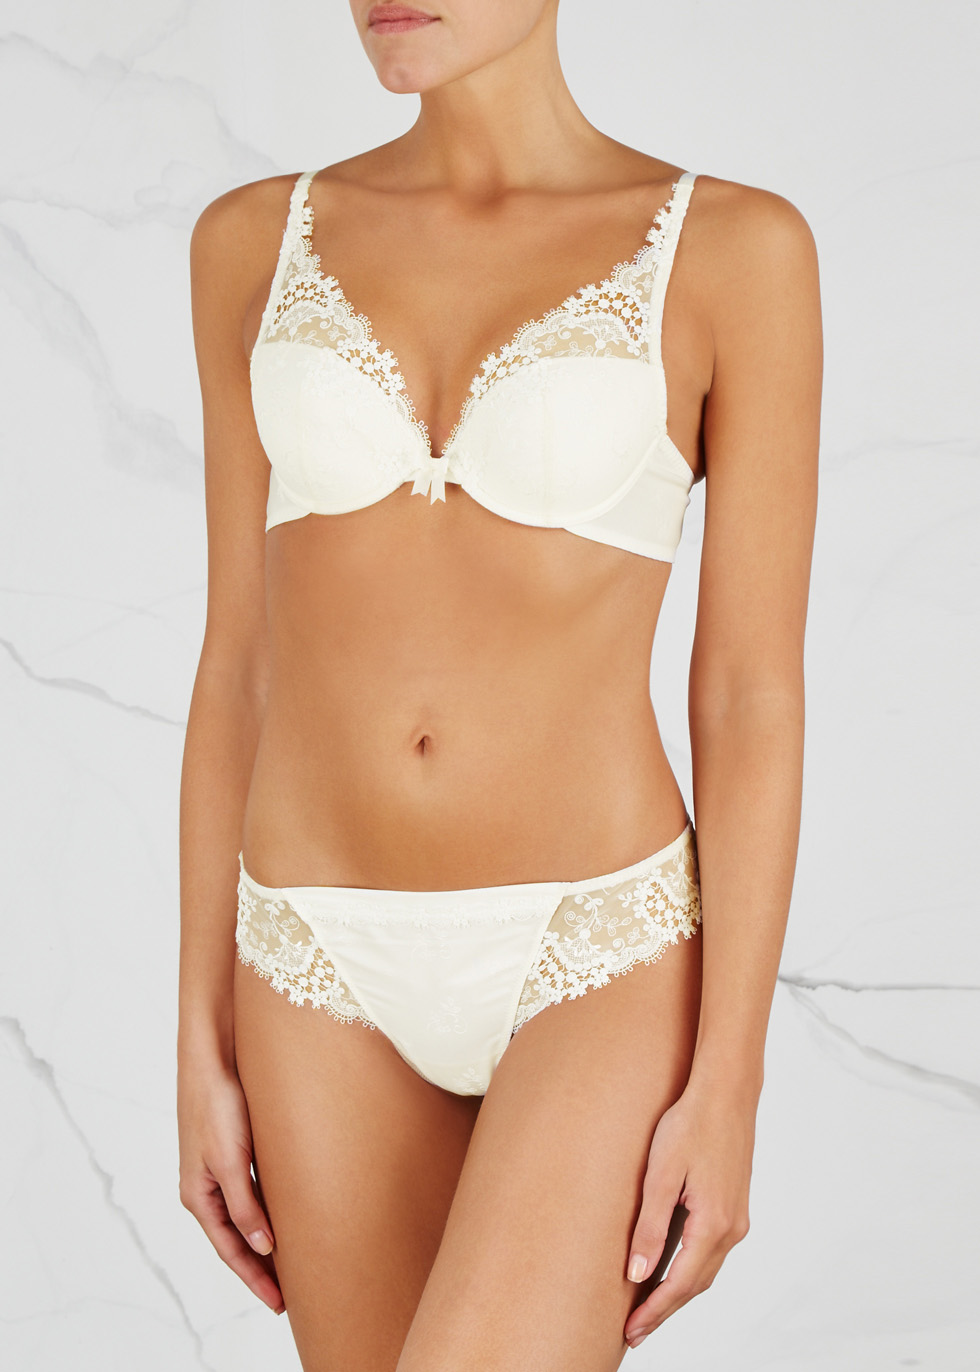 Wish ivory lace push-up bra - Simone Pérèle